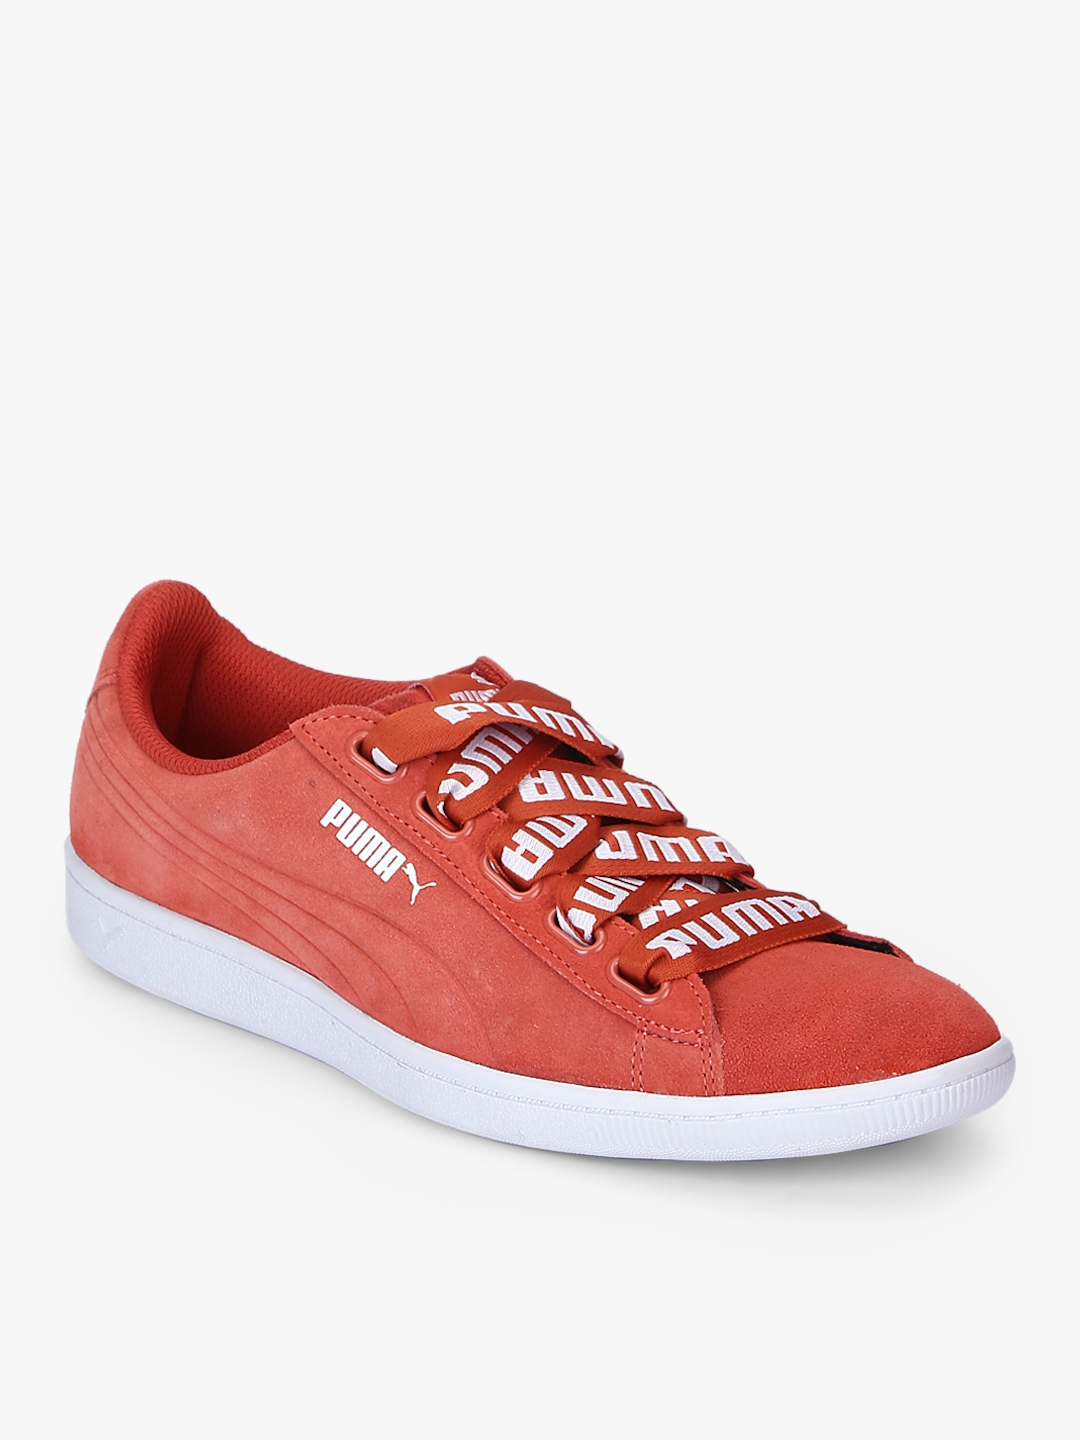 2d71254d89da Buy Puma Vikky Ribbon Bold Spiced Coral Spic Pink Sneakers - Casual ...